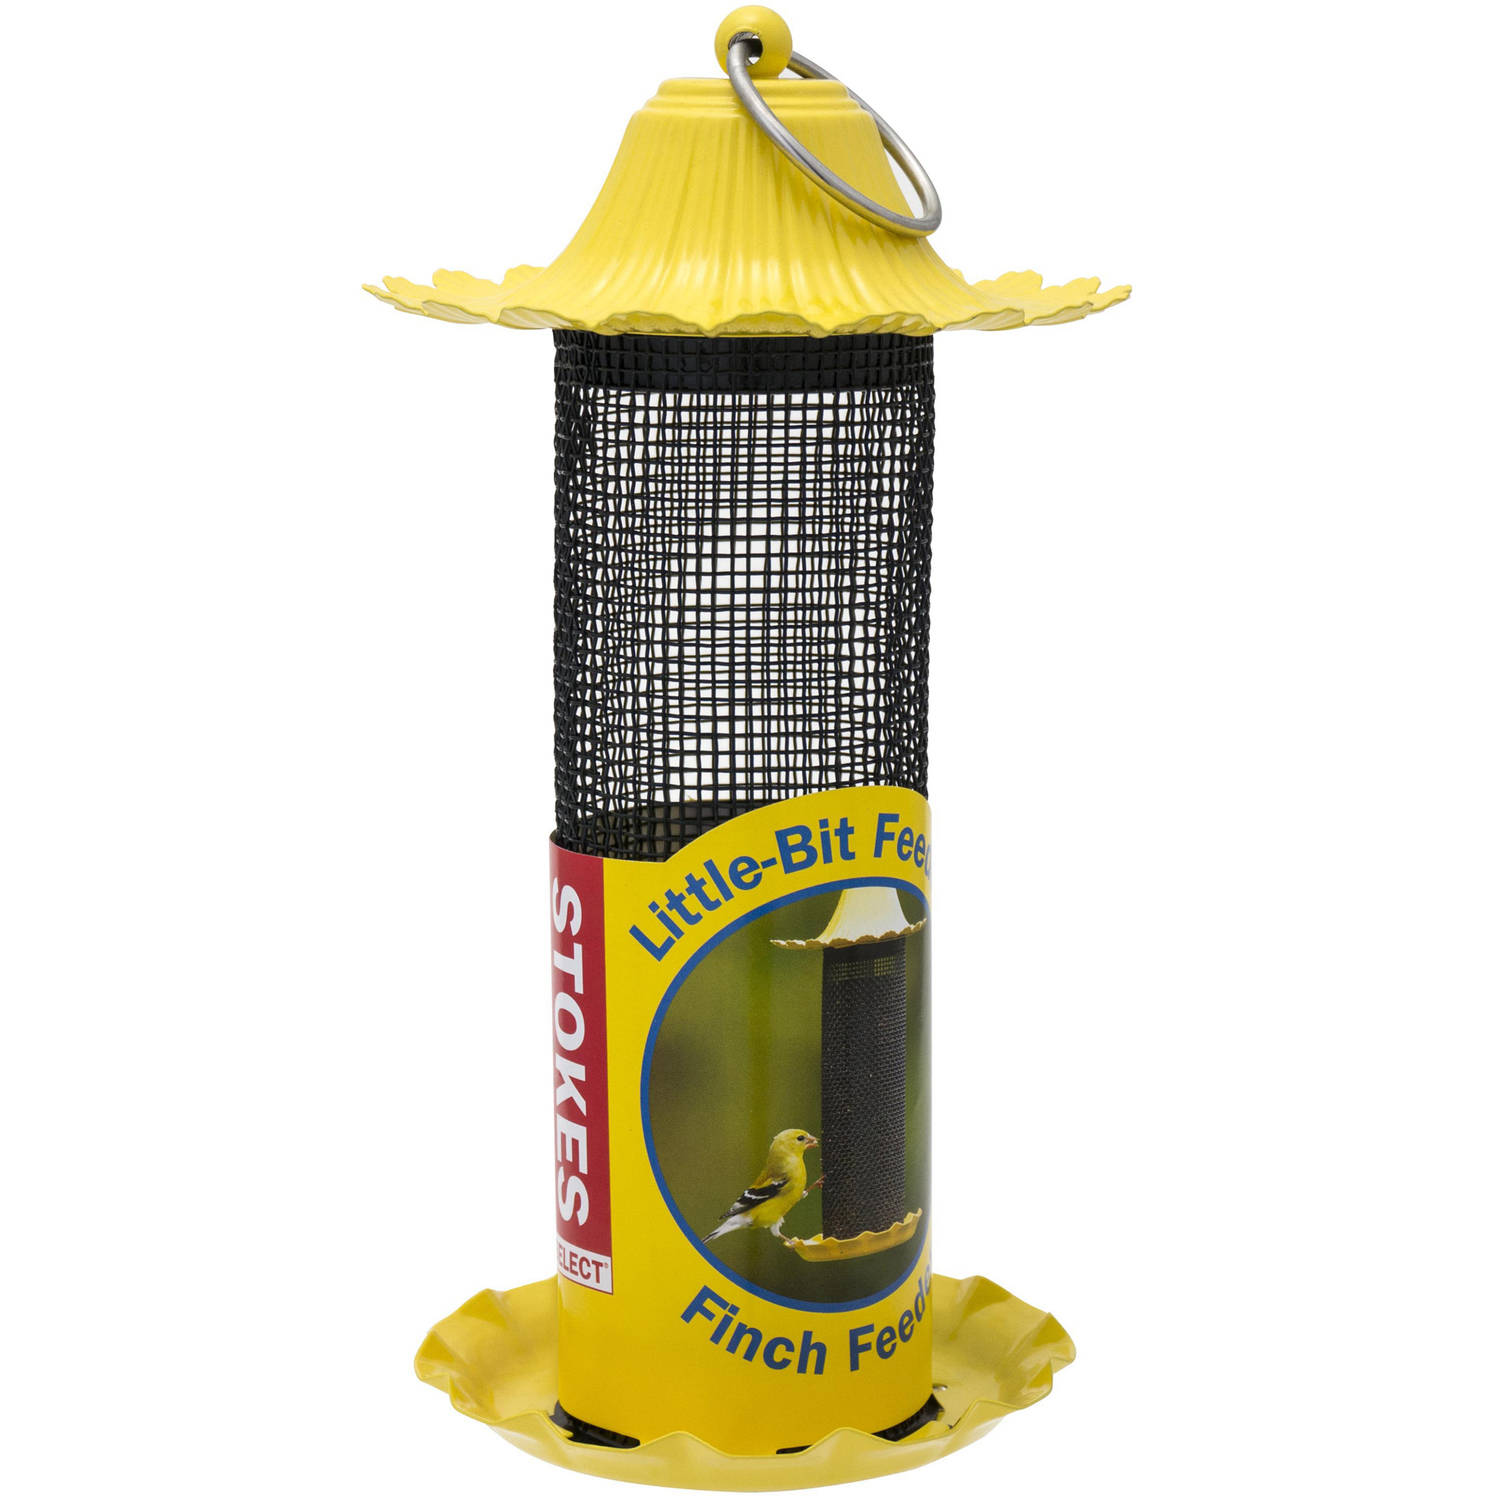 Stokes Select Little-Bit Feeders Finch Birdfeeder with Metal Roof, Yellow, .6 lb Seed... by Hiatt Manufacturing